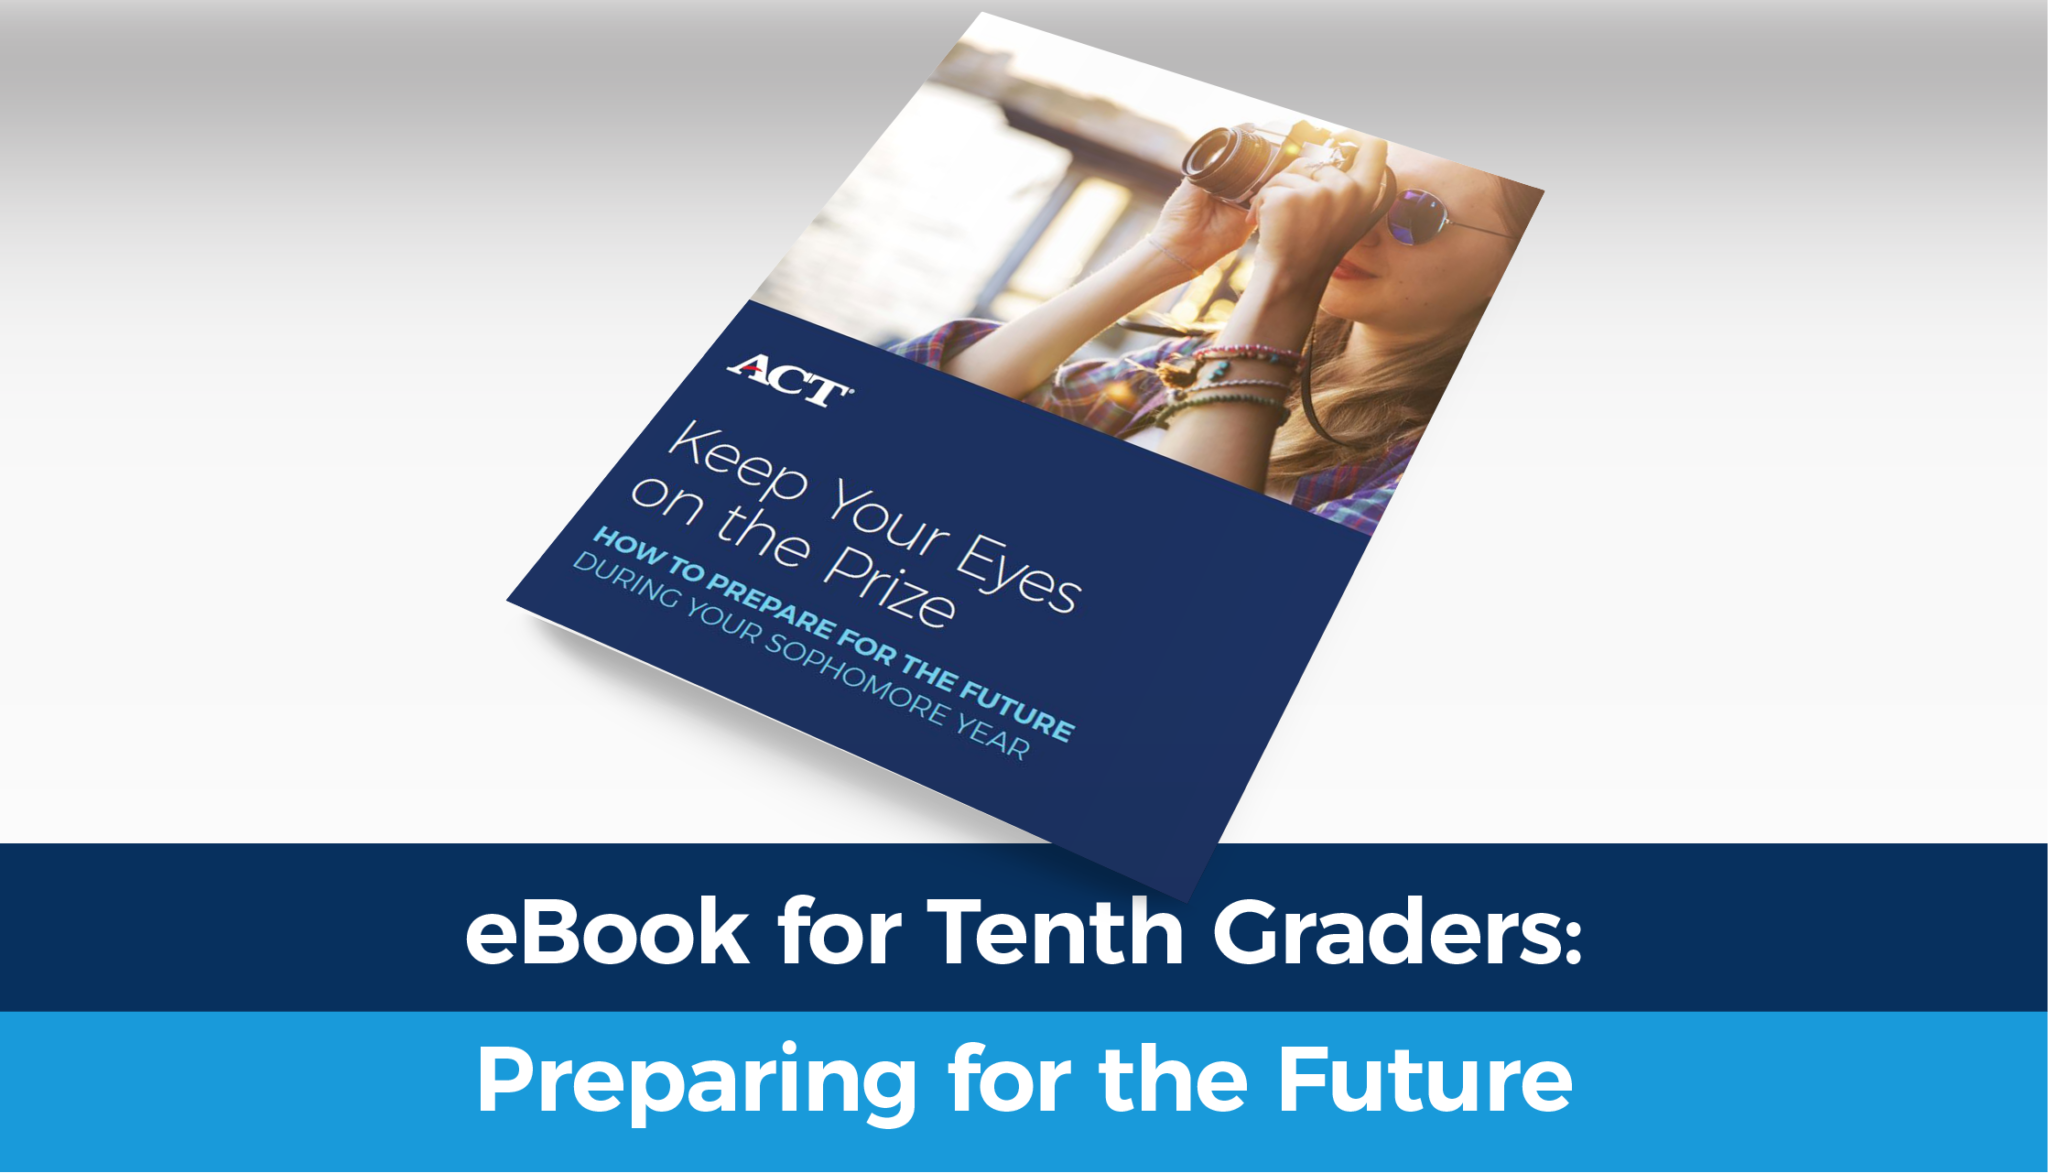 Preparing for the Future: eBook for the Tenth Graders